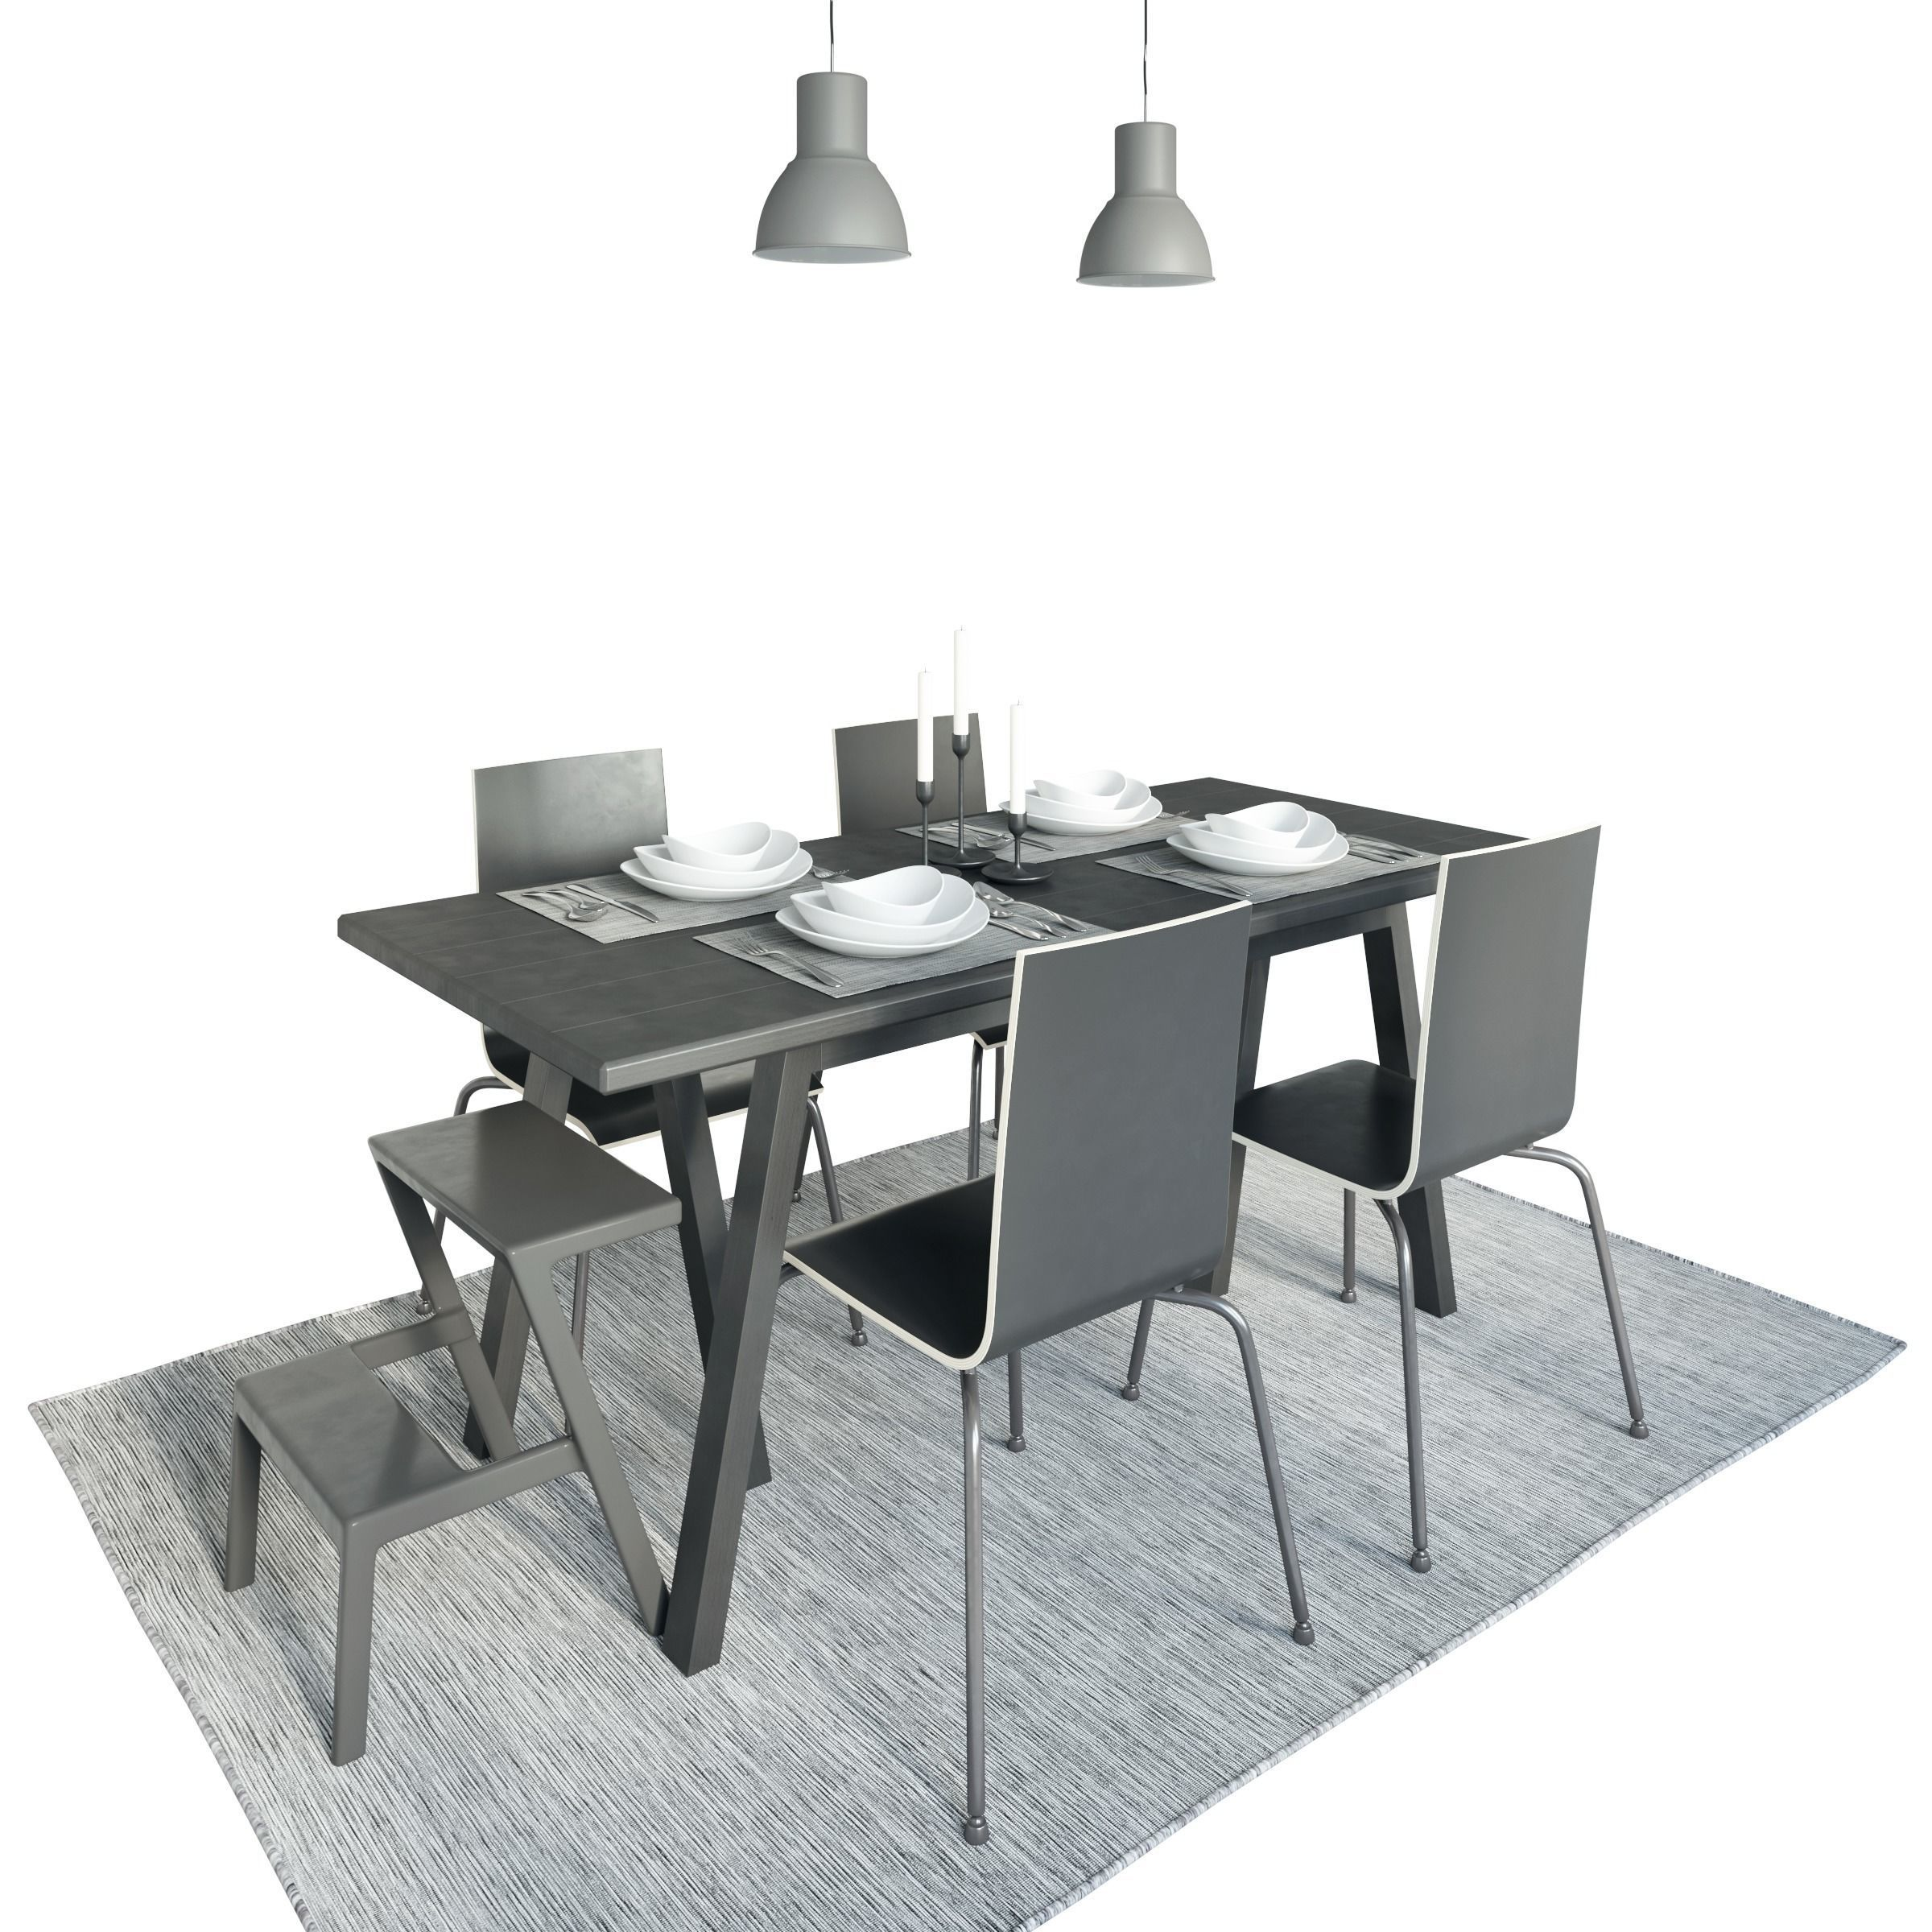 Table Riggestad and chair Martin by